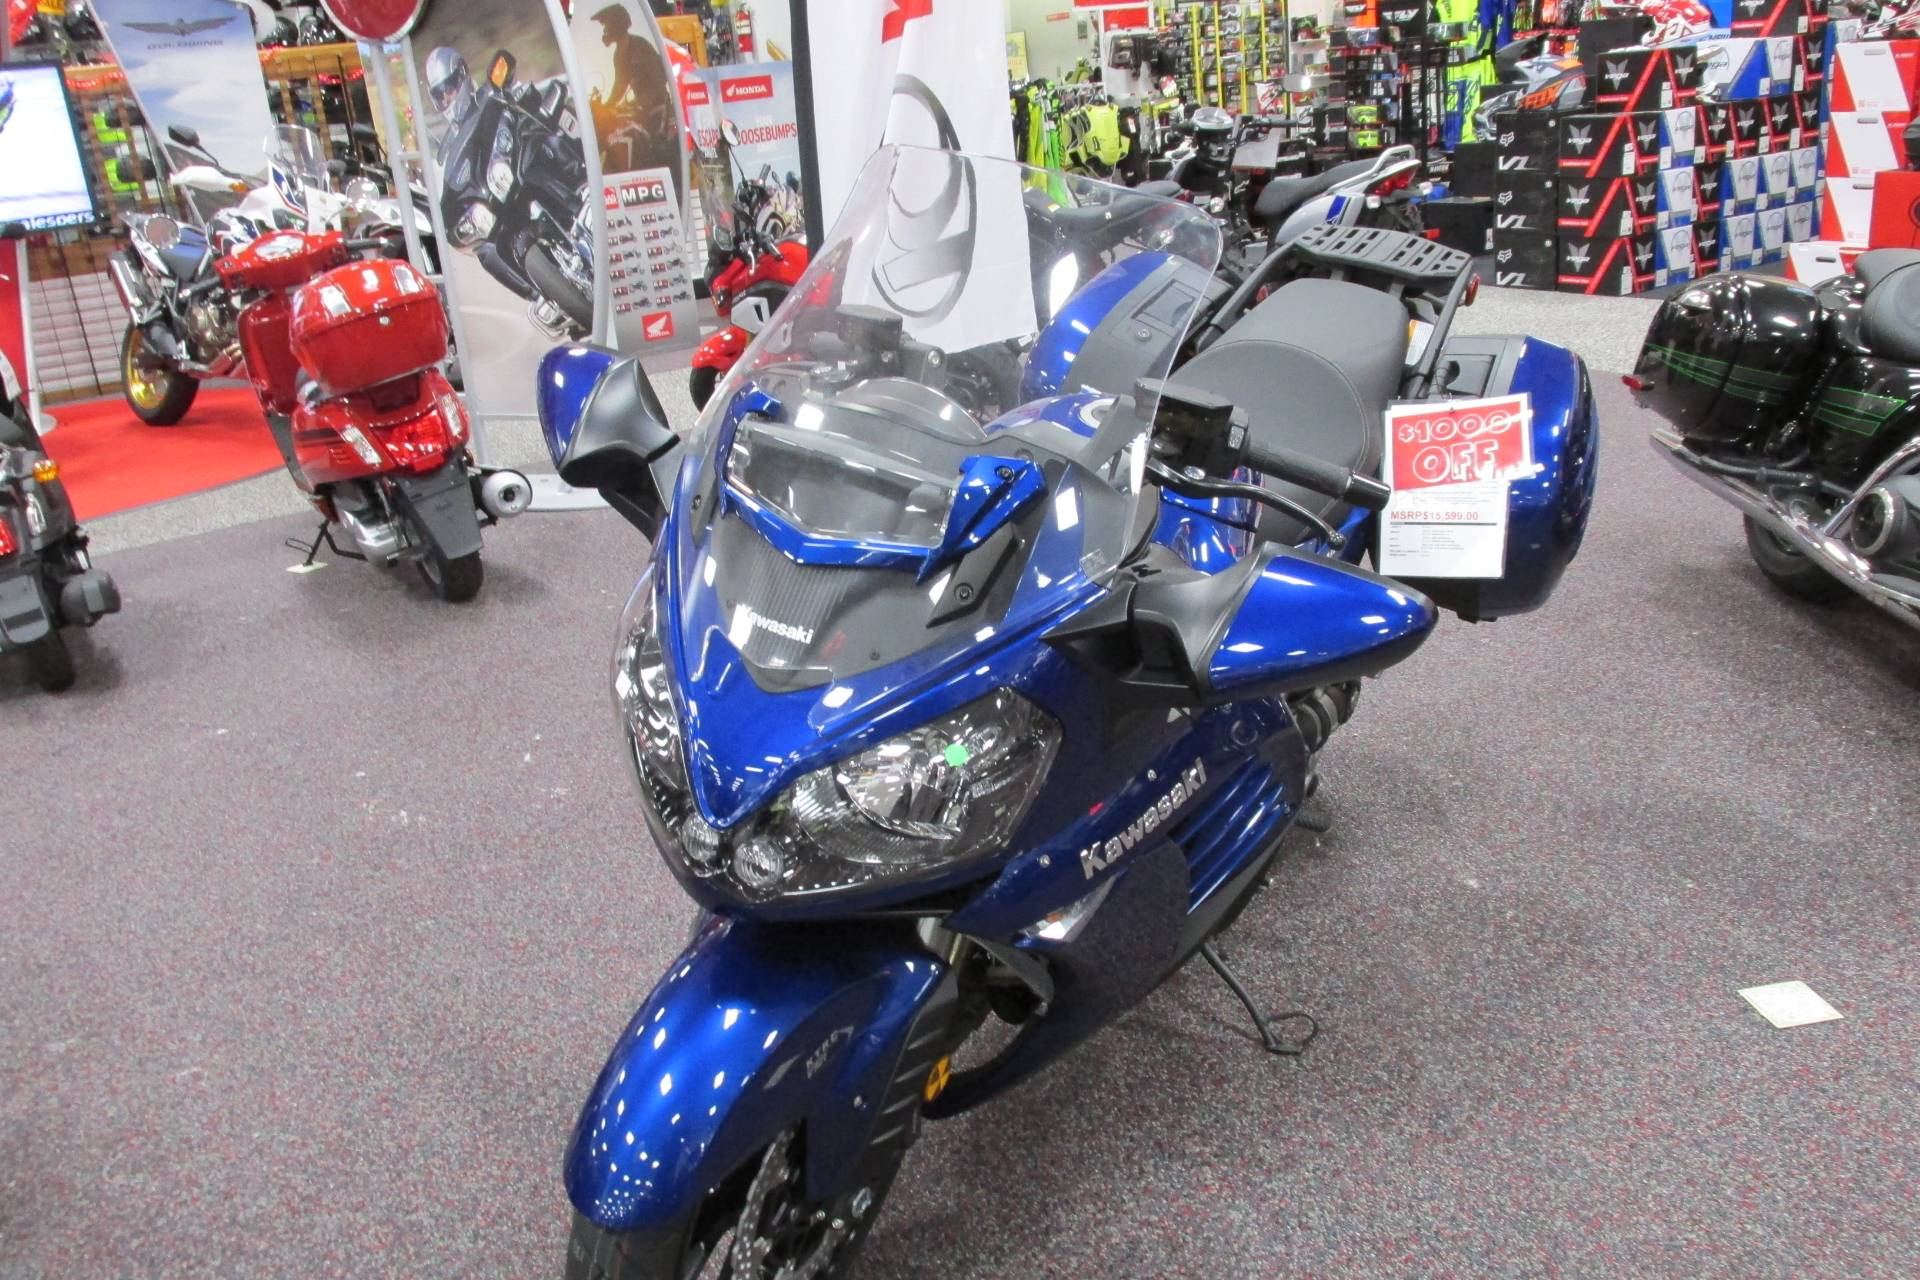 2017 Kawasaki CONCOURSE 1400 in Springfield, Ohio